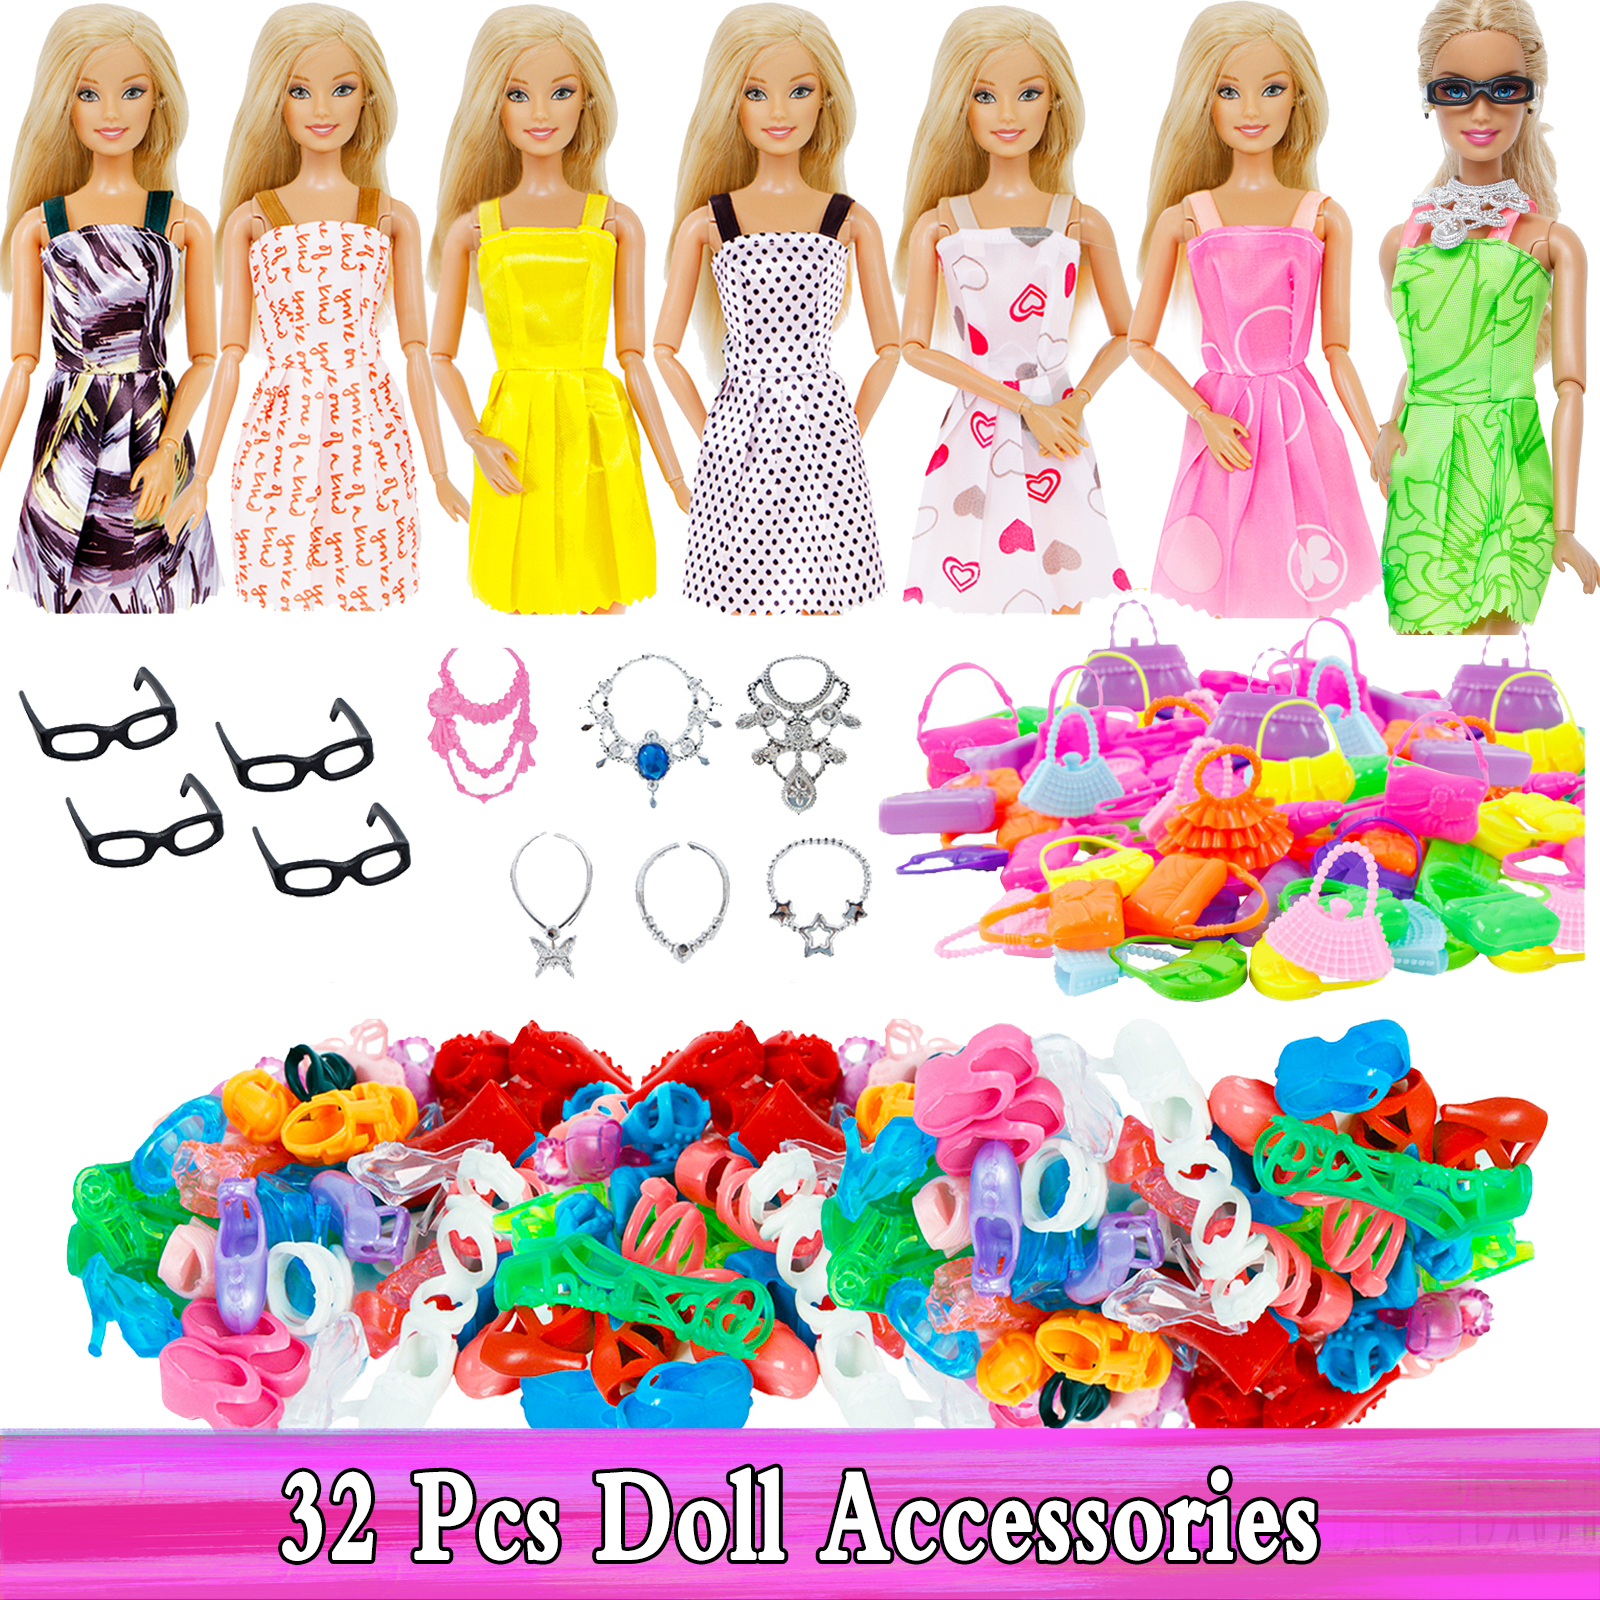 Random 32 Pcs = 10x Mixed Style Mini Dress + 10x Shoes + 6x Necklace + 4x Glasses + 2x Plastic Bags For Barbie Doll Accessories